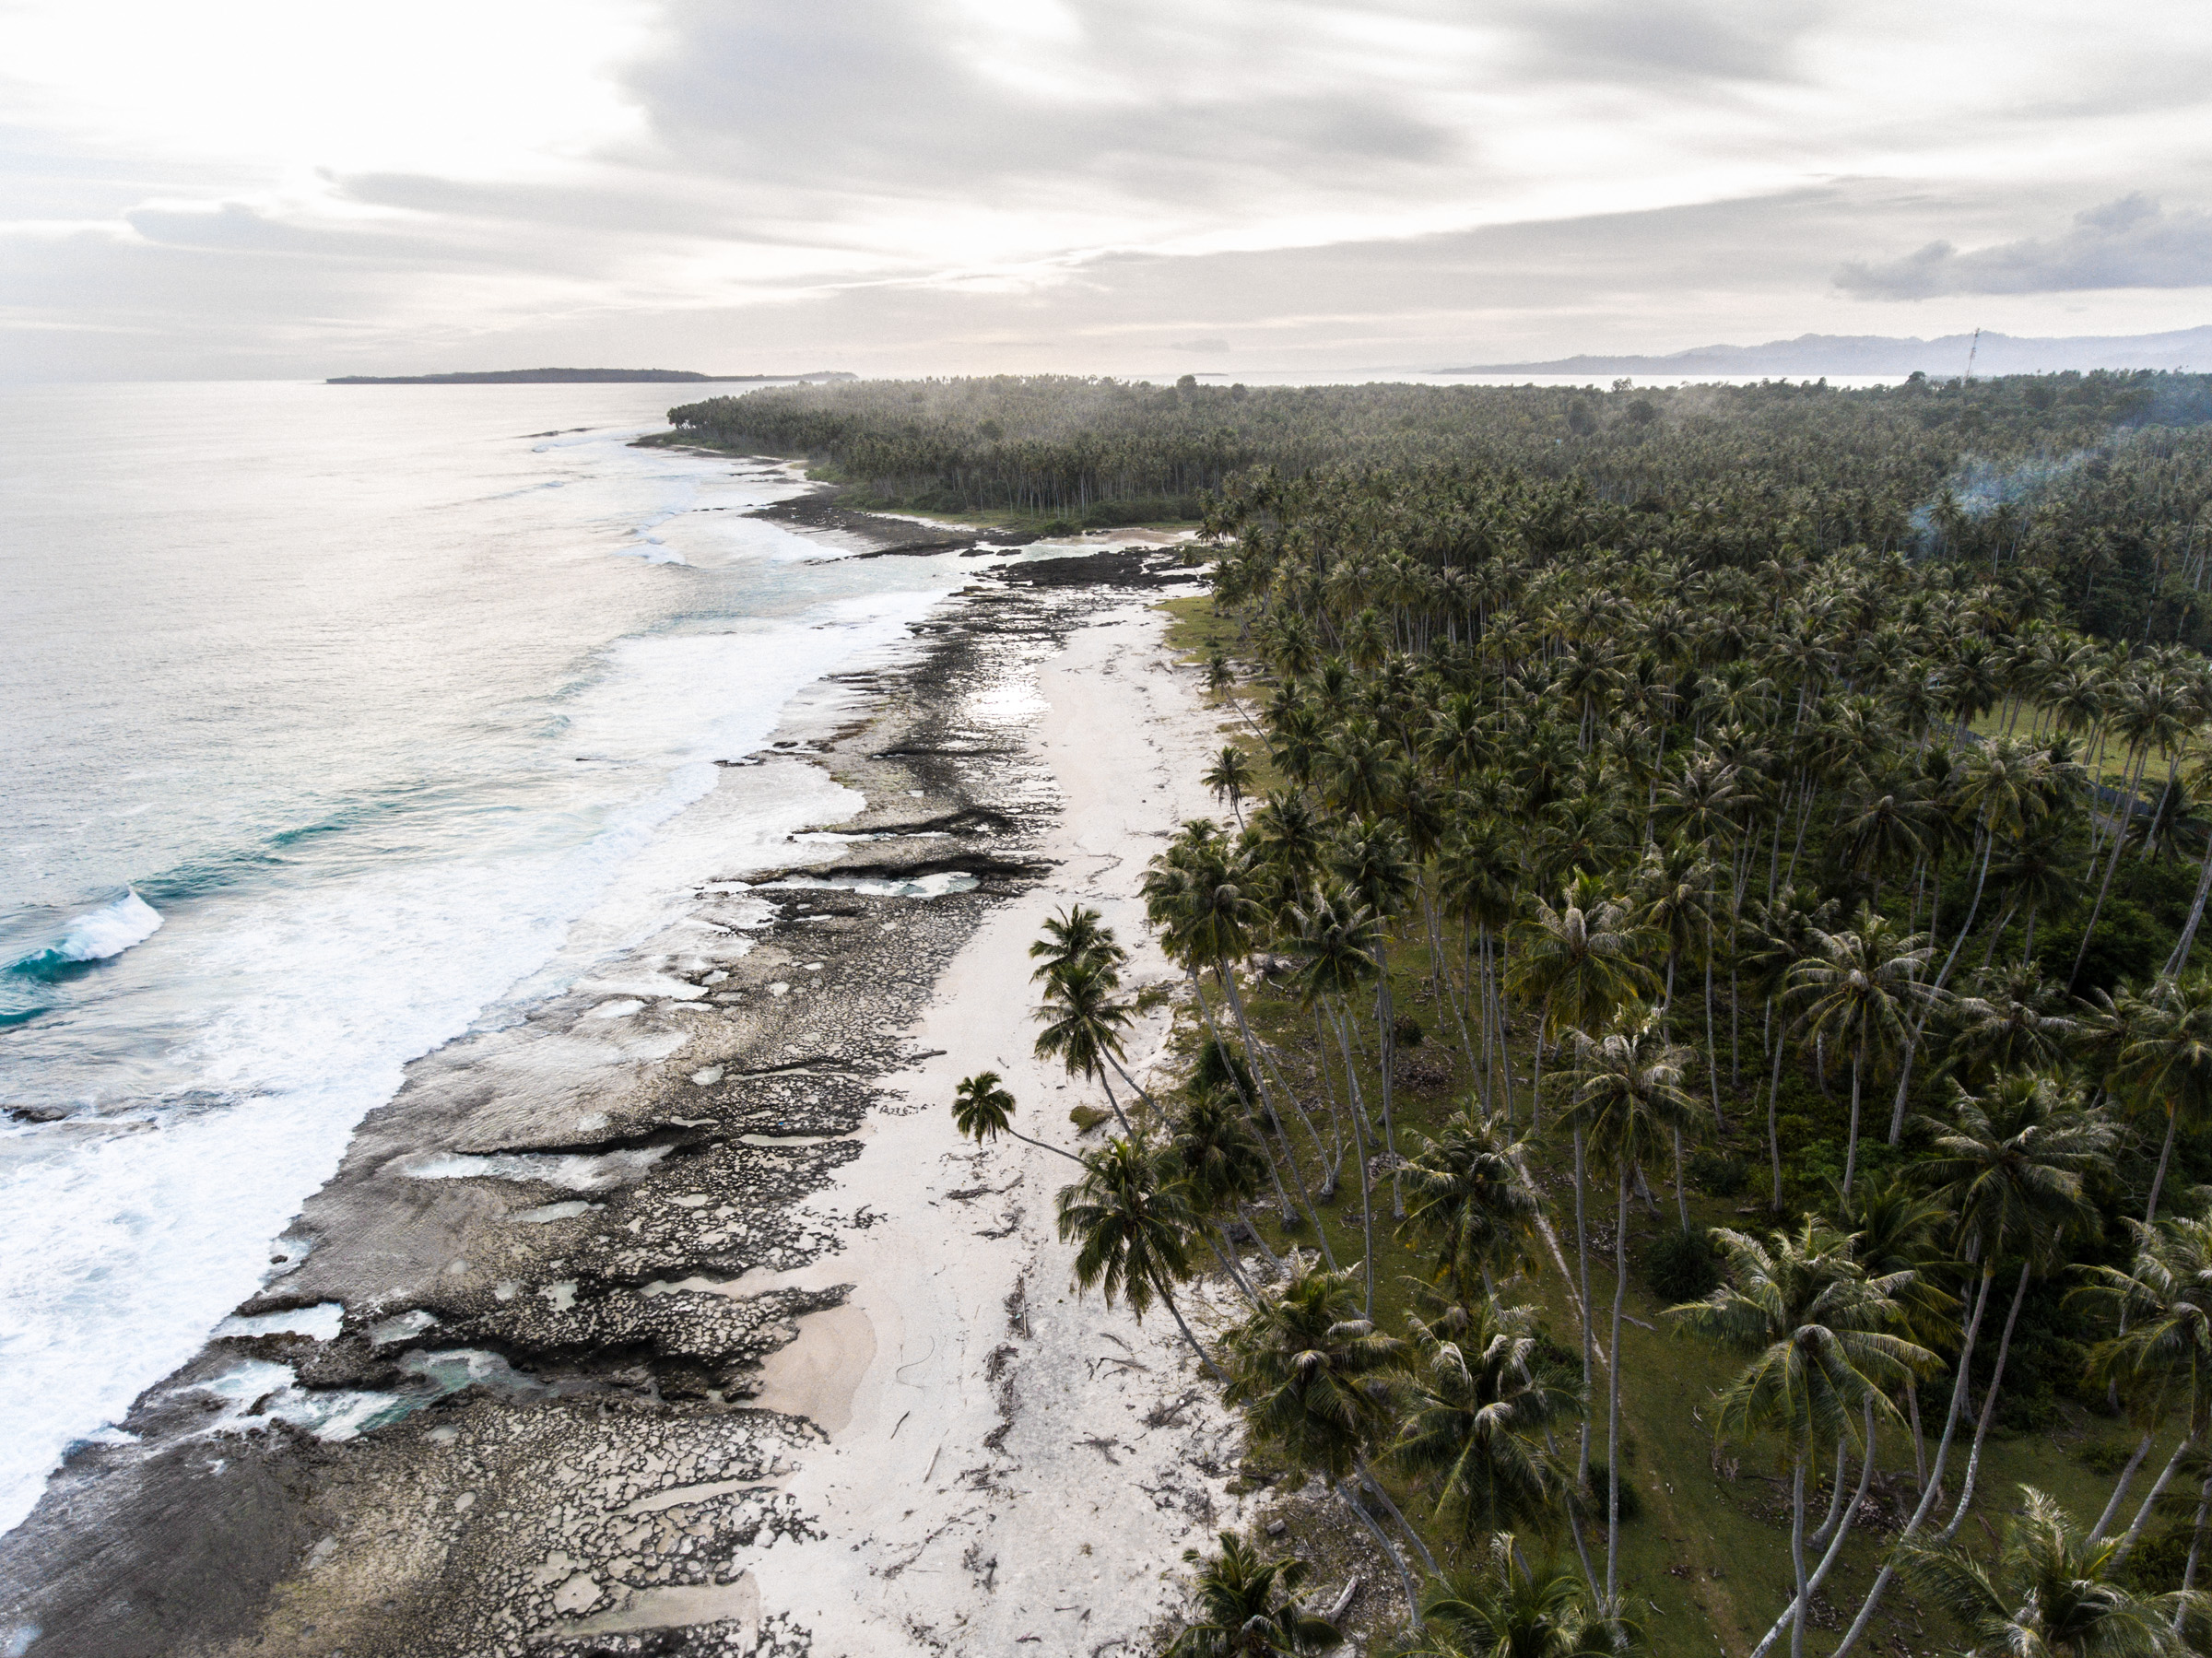 Seaside coconuts growing wild on Simeulue Island, Indonesia